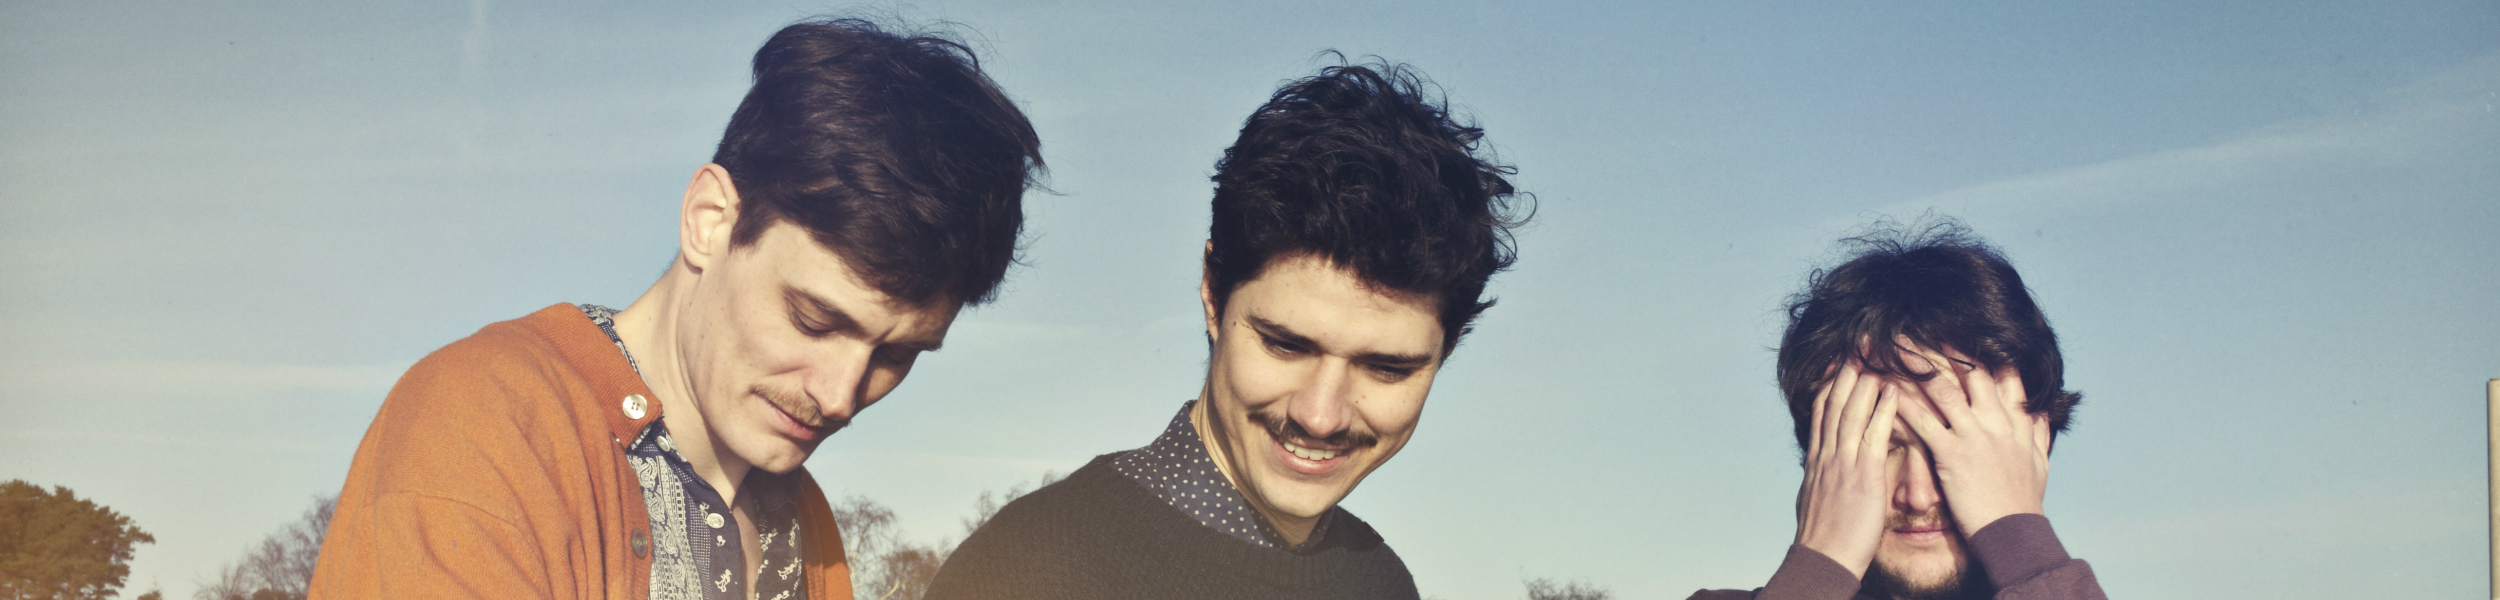 Efterklang - Efterklang Premiere Two New Videos, UK And Eire Tour Starts Tonight